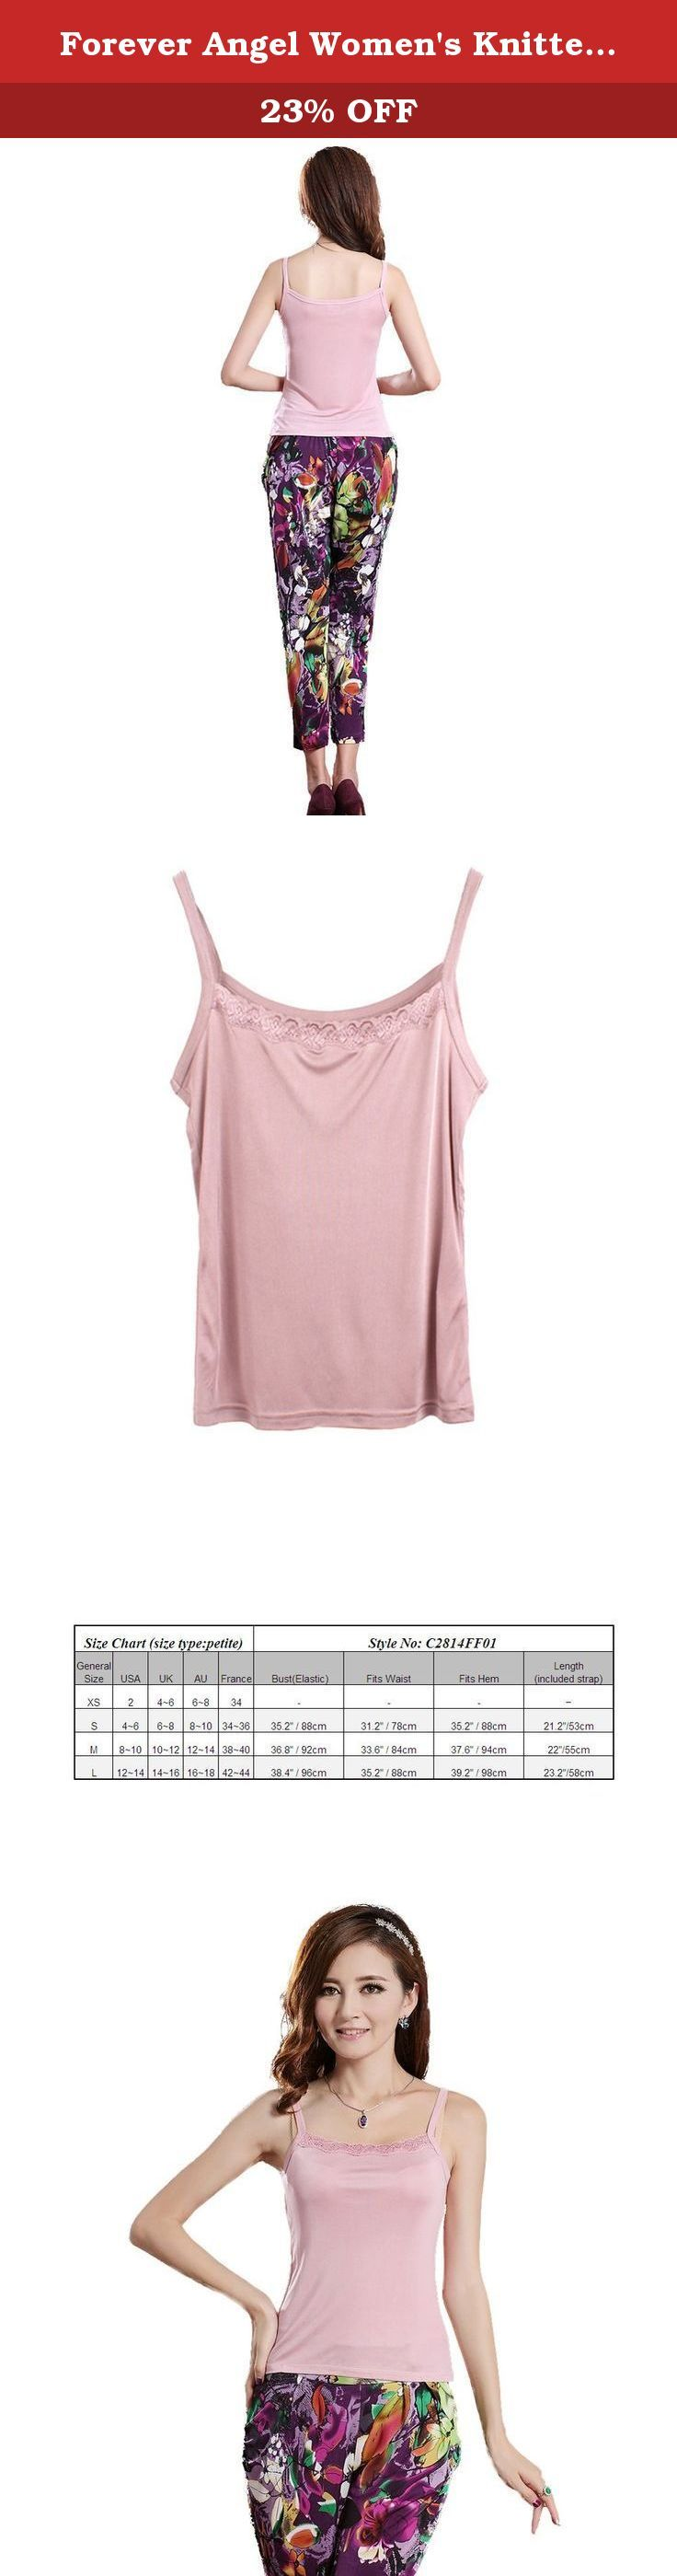 "Forever Angel Women's Knitted Silk Lace Camisole Top Dusky pink Size M. ♦This top features pretty lace, made of 100% Mulberry silk with stretch, more comfortable,soft; ♦The extremely soft knitted-silk material will gently hug your body and will not create any pressure points even when you creased it ; ♦Silk knitting is made of superior quality silk which is known as the ""Queen of Fiber"" for its softness, good ventilation, high moisture absorption, high intensity, good elasticity and..."